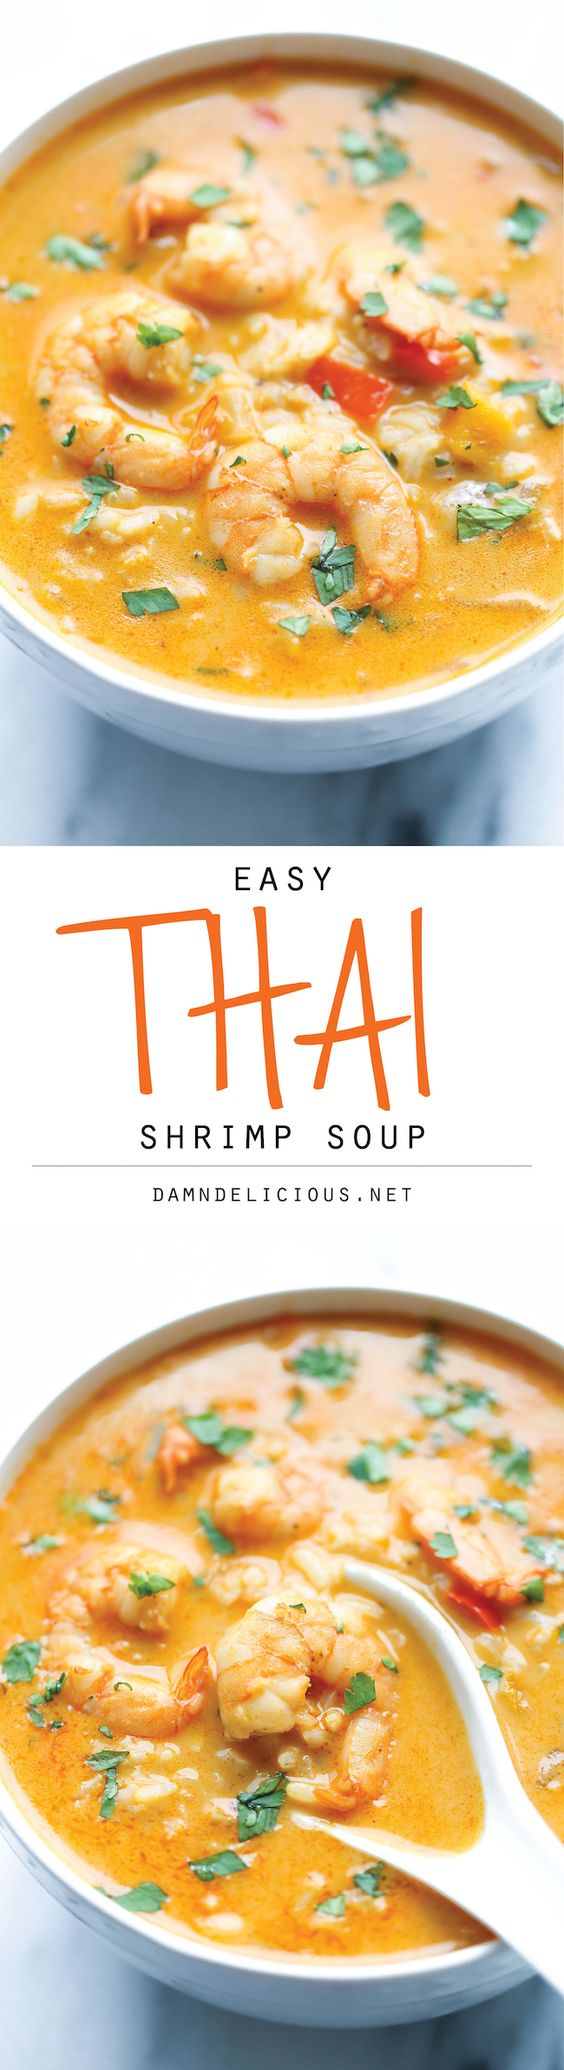 Easy Thai Shrimp Soup - Skip the take-out and try making this at home - it's unbelievably easy and 10000x tastier and healthier! Visit http://getyourwaistback.com/ for more healthy tips and tricks!